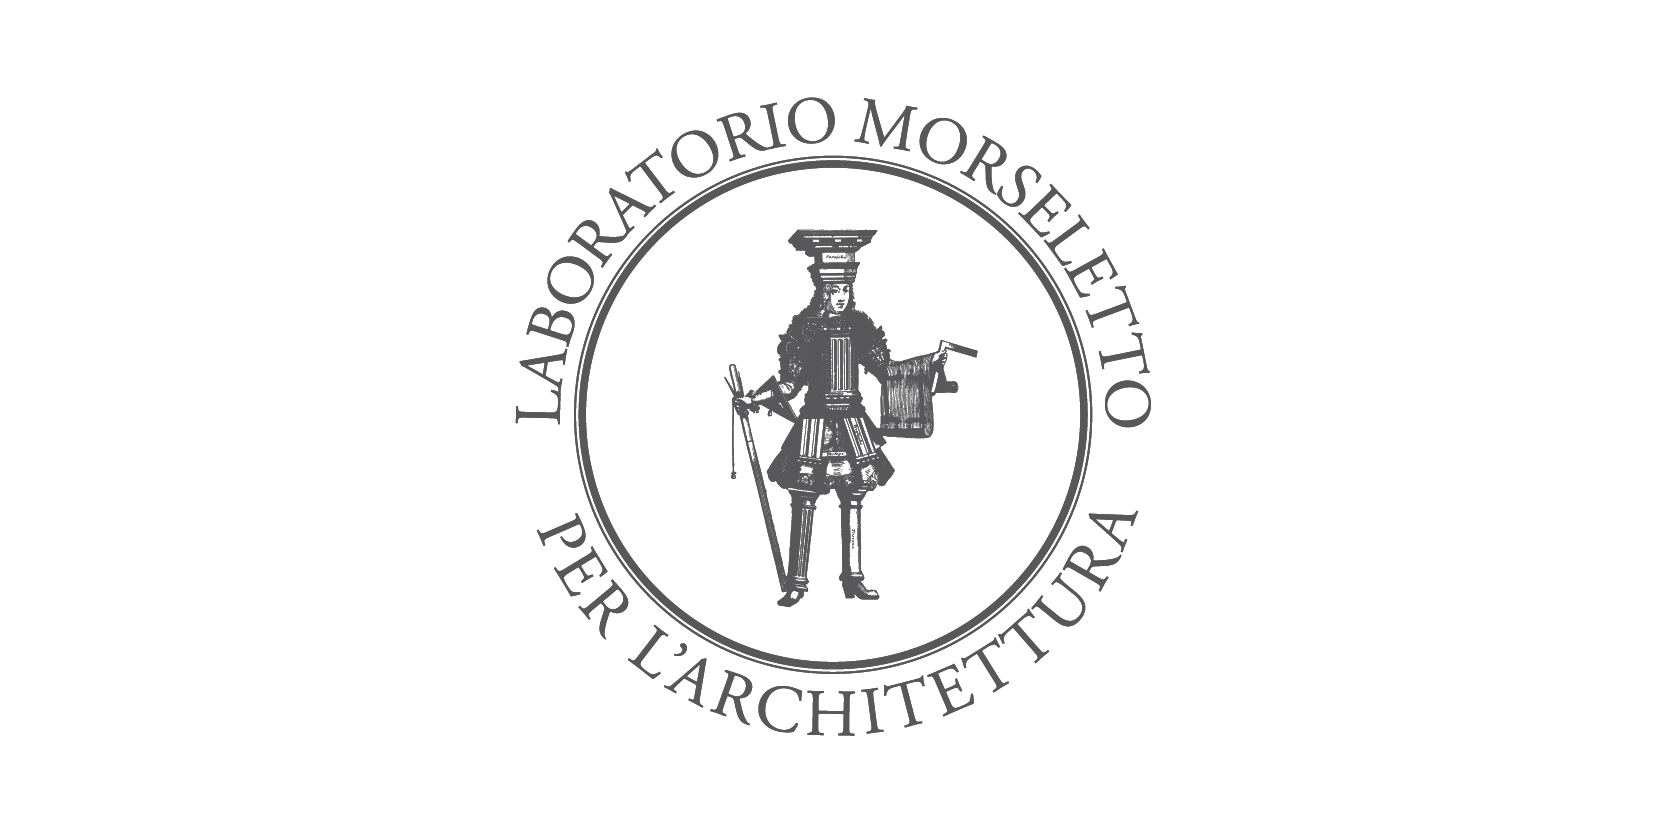 Laboratorio Morseletto